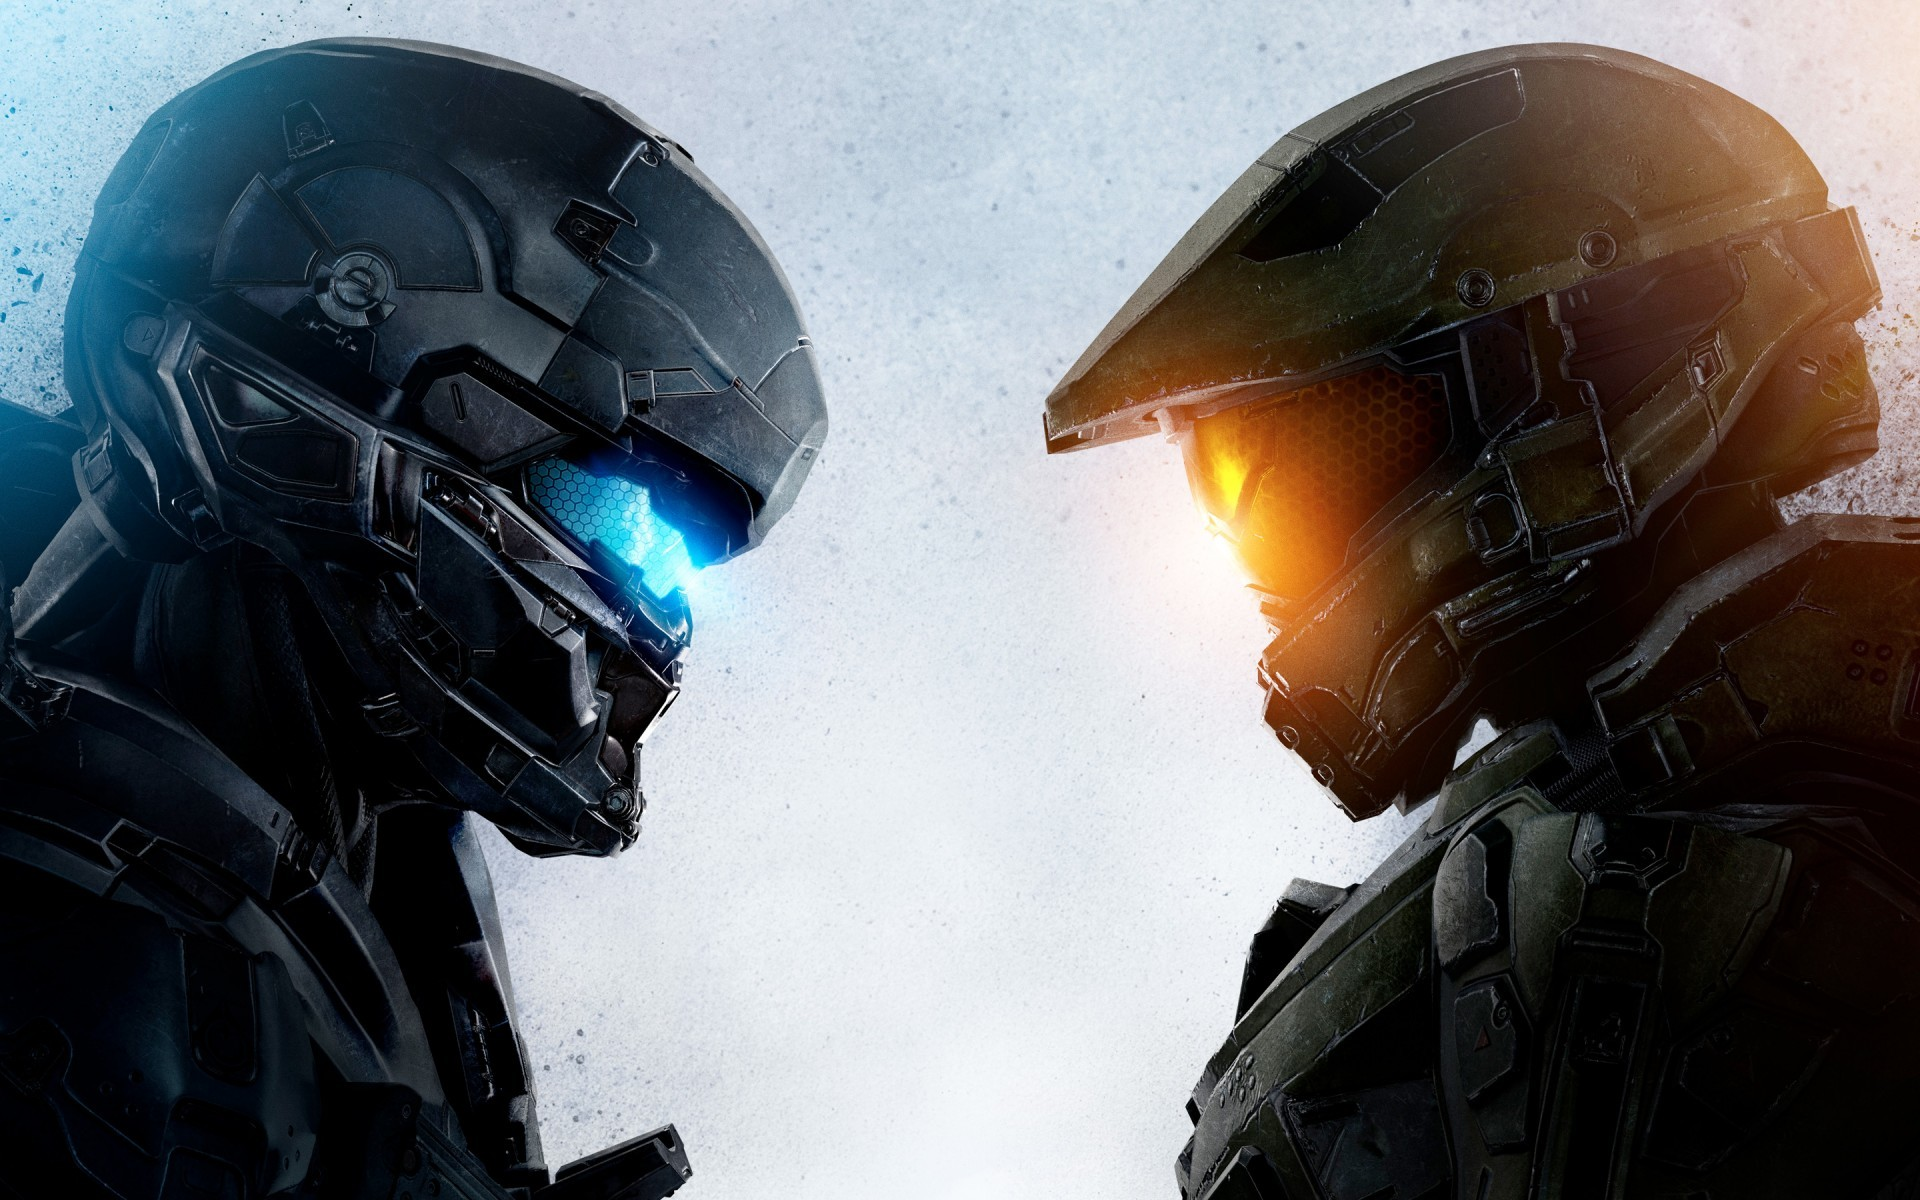 2015 Halo 5 Guardians Wallpapers | HD Wallpapers